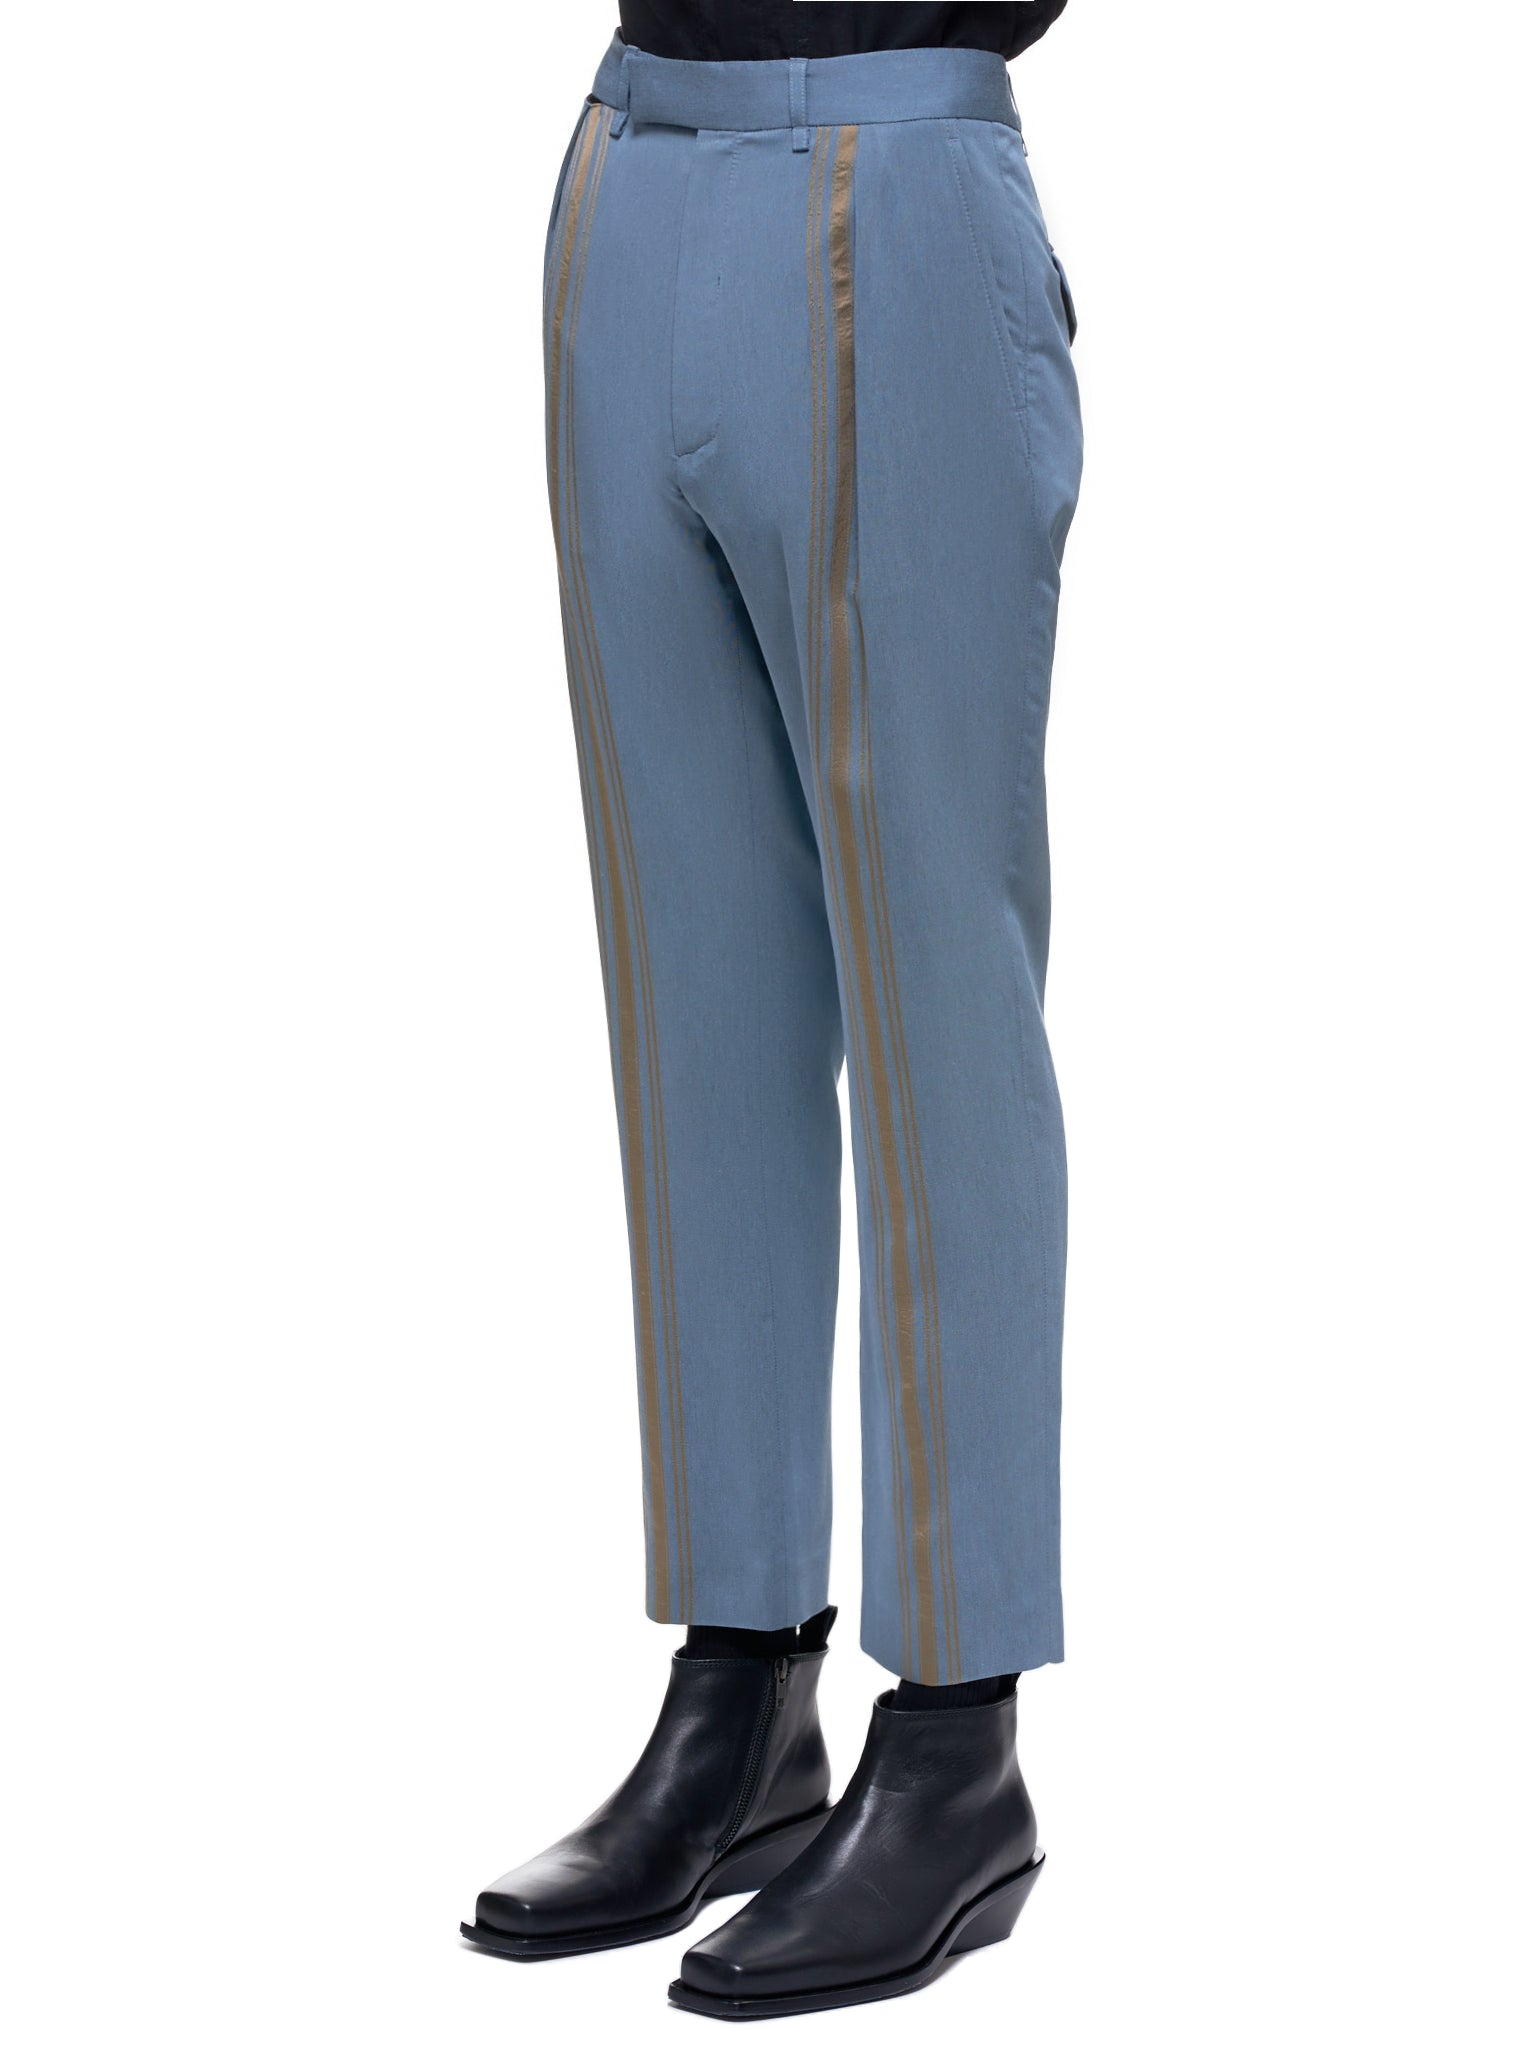 Naval Trousers (2001-3402-166-050-BLUE-GOLD)